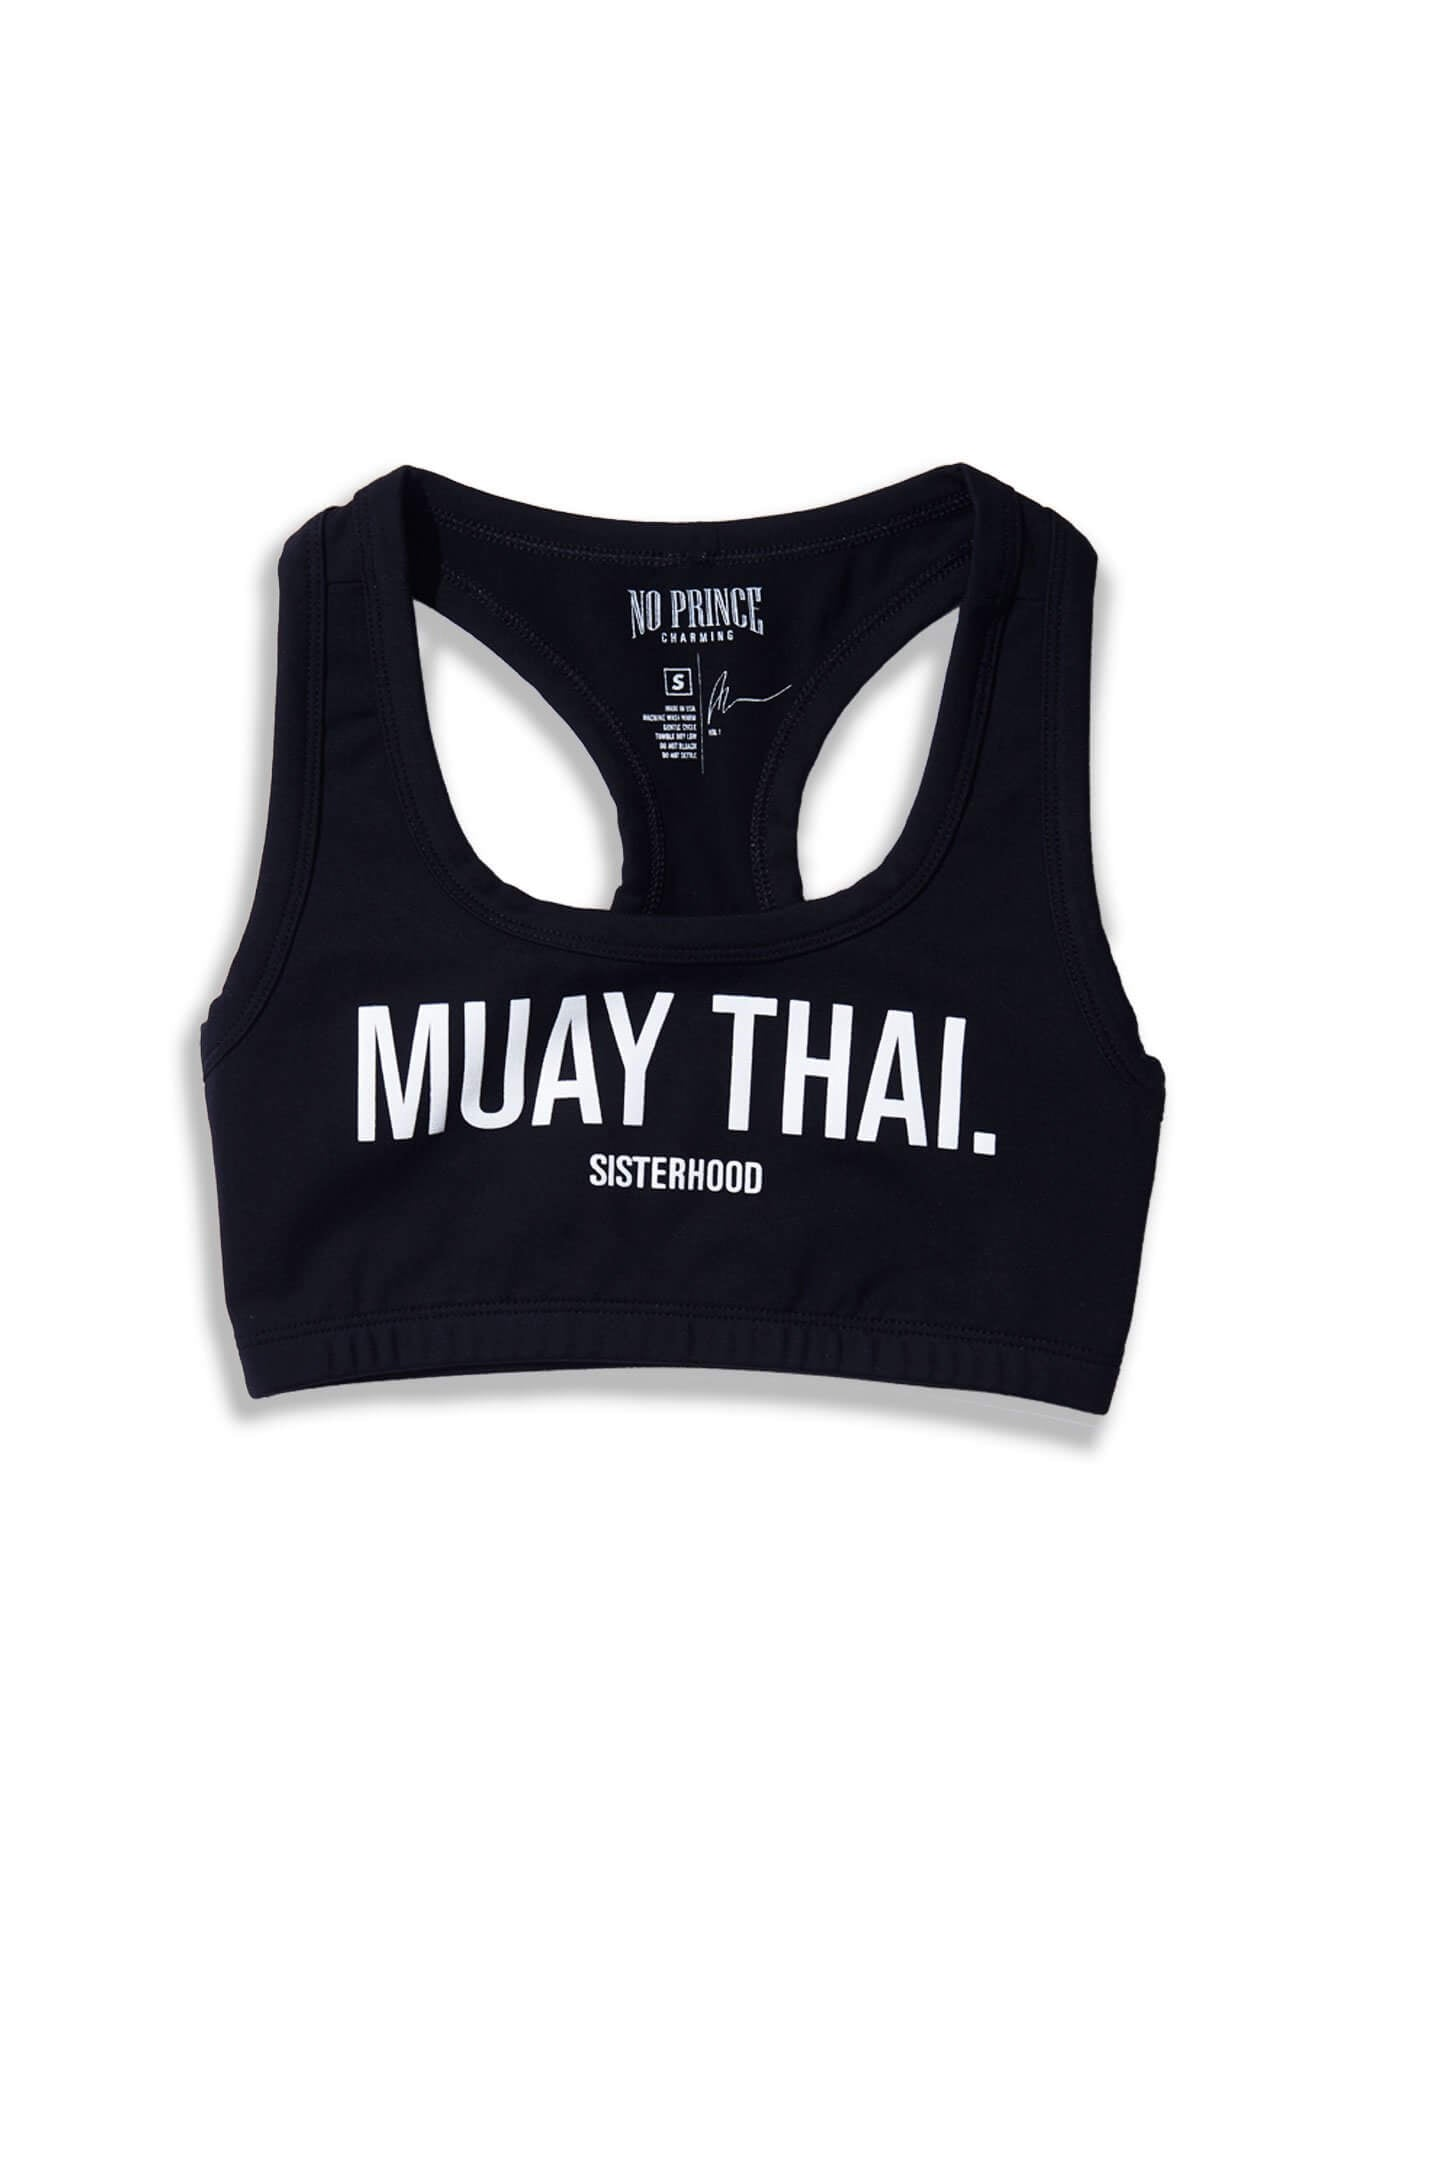 MUAY THAI SPORTS BRA - BLACK